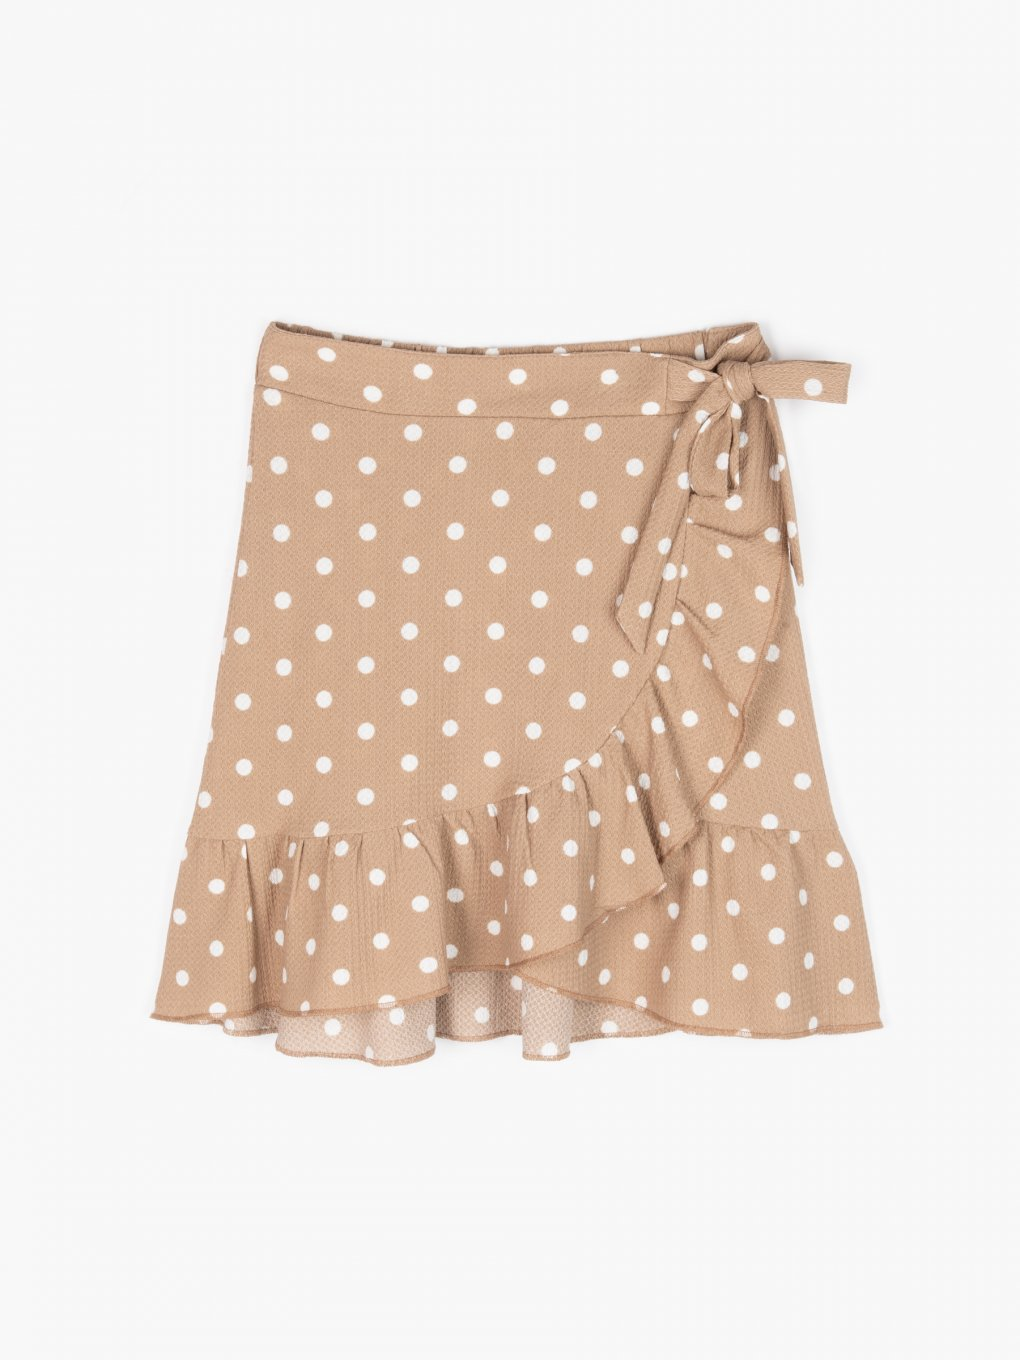 Polka dot mini wrap skirt